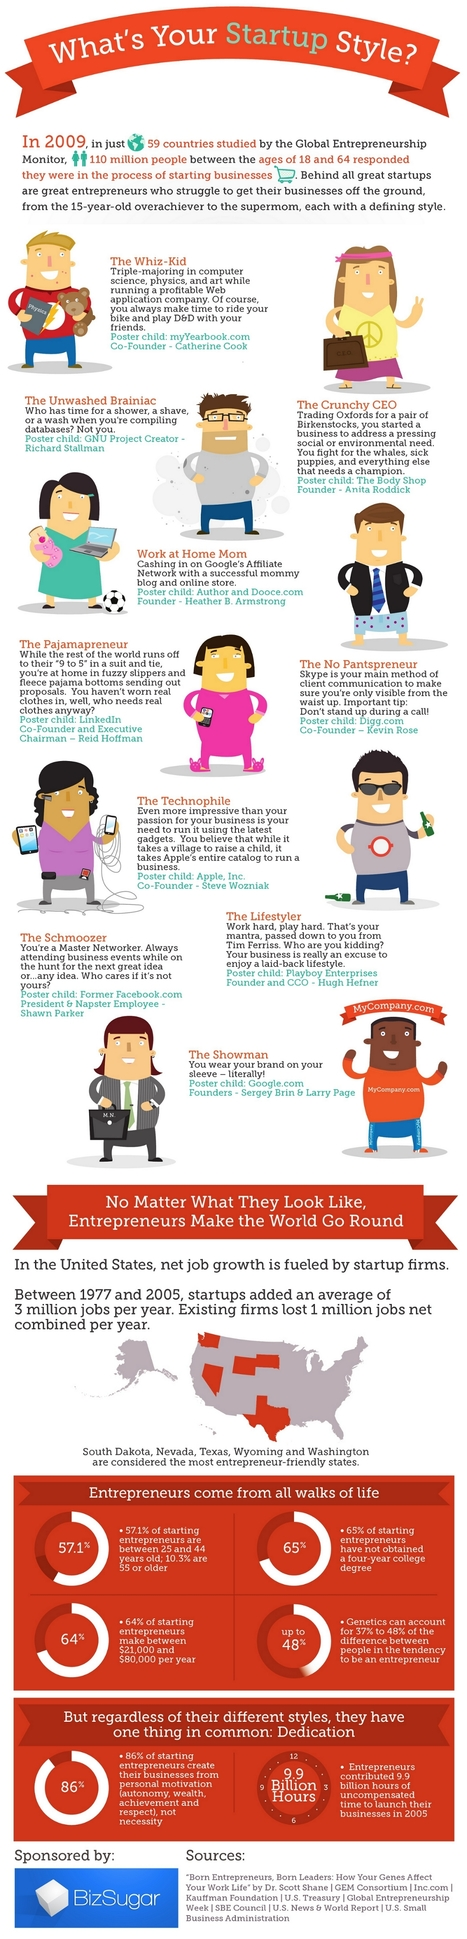 10 Entrepreneurial Styles: Which One Are You? [Infographic] | Startups and Entrepreneurship | Scoop.it